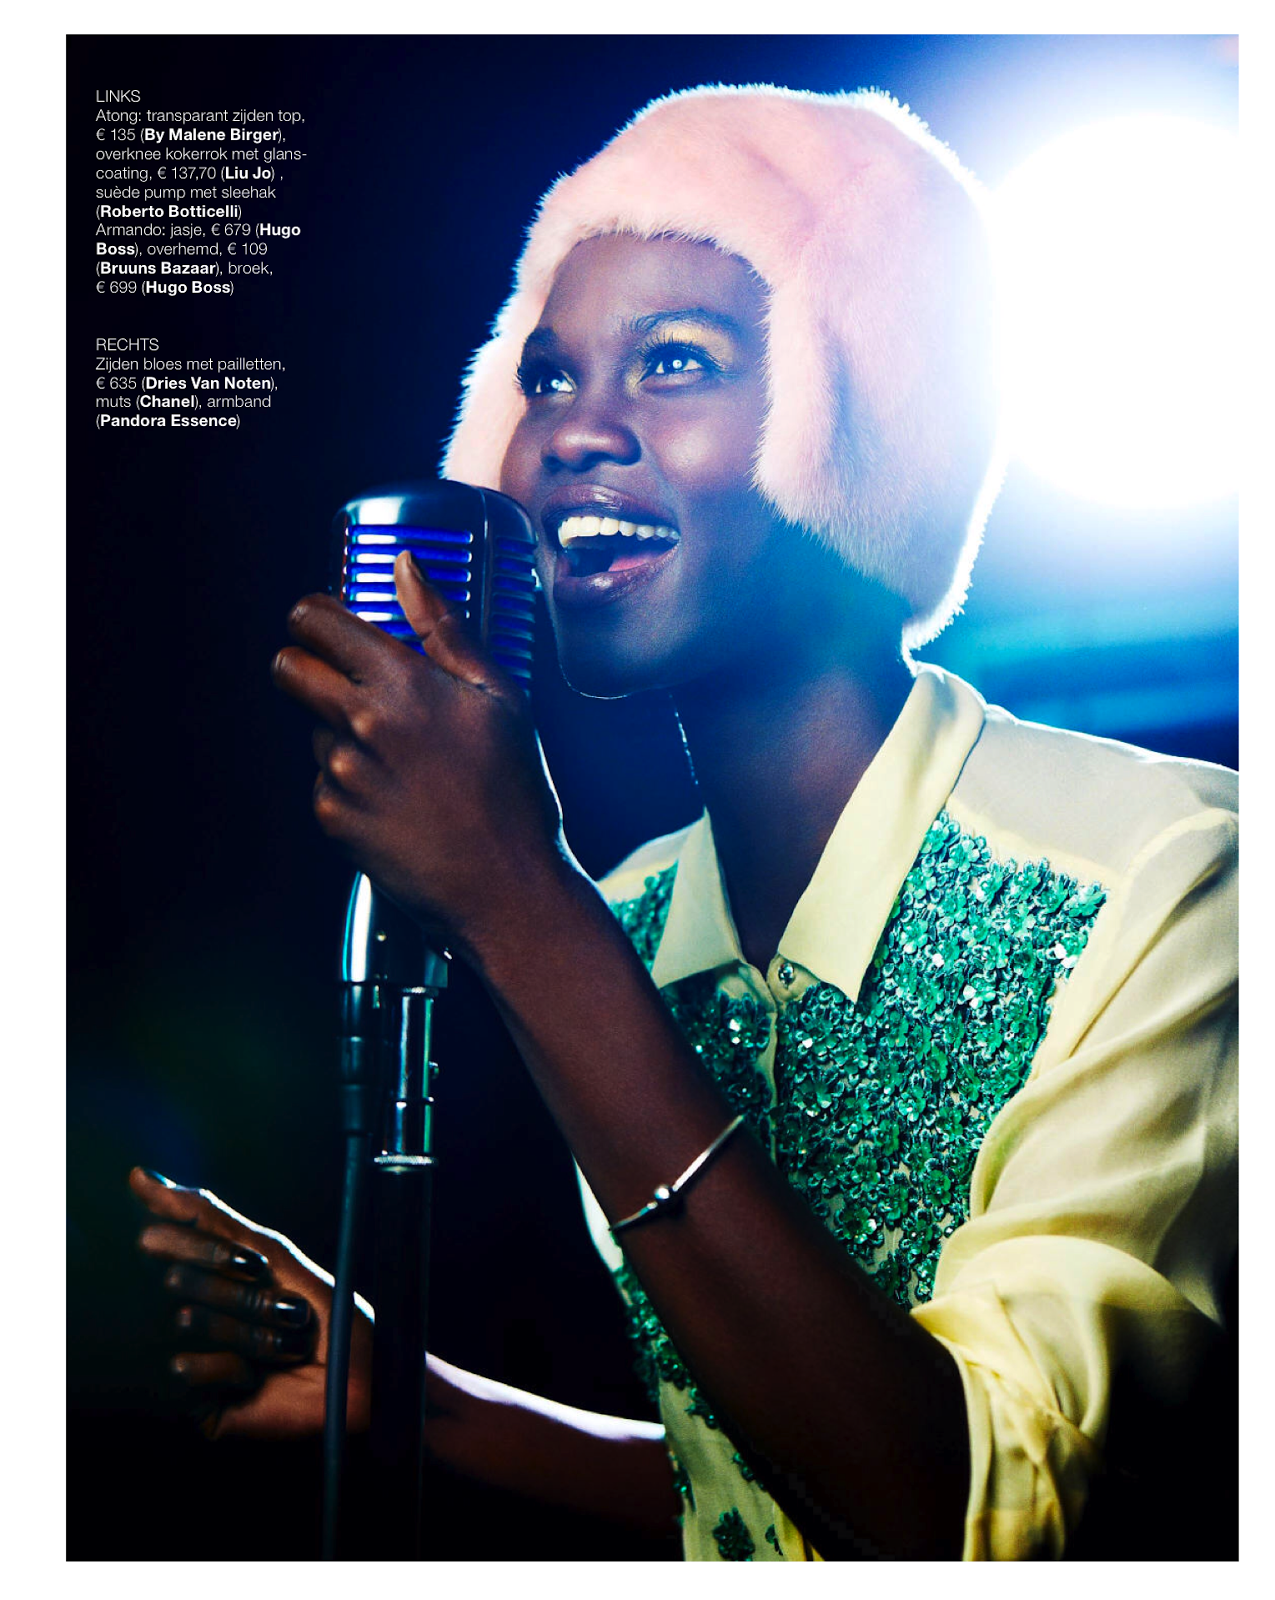 Magazine Photoshoot : Atong Ajork Photoshoot by Chris Craymer for Marie Claire Netherlands January 2014